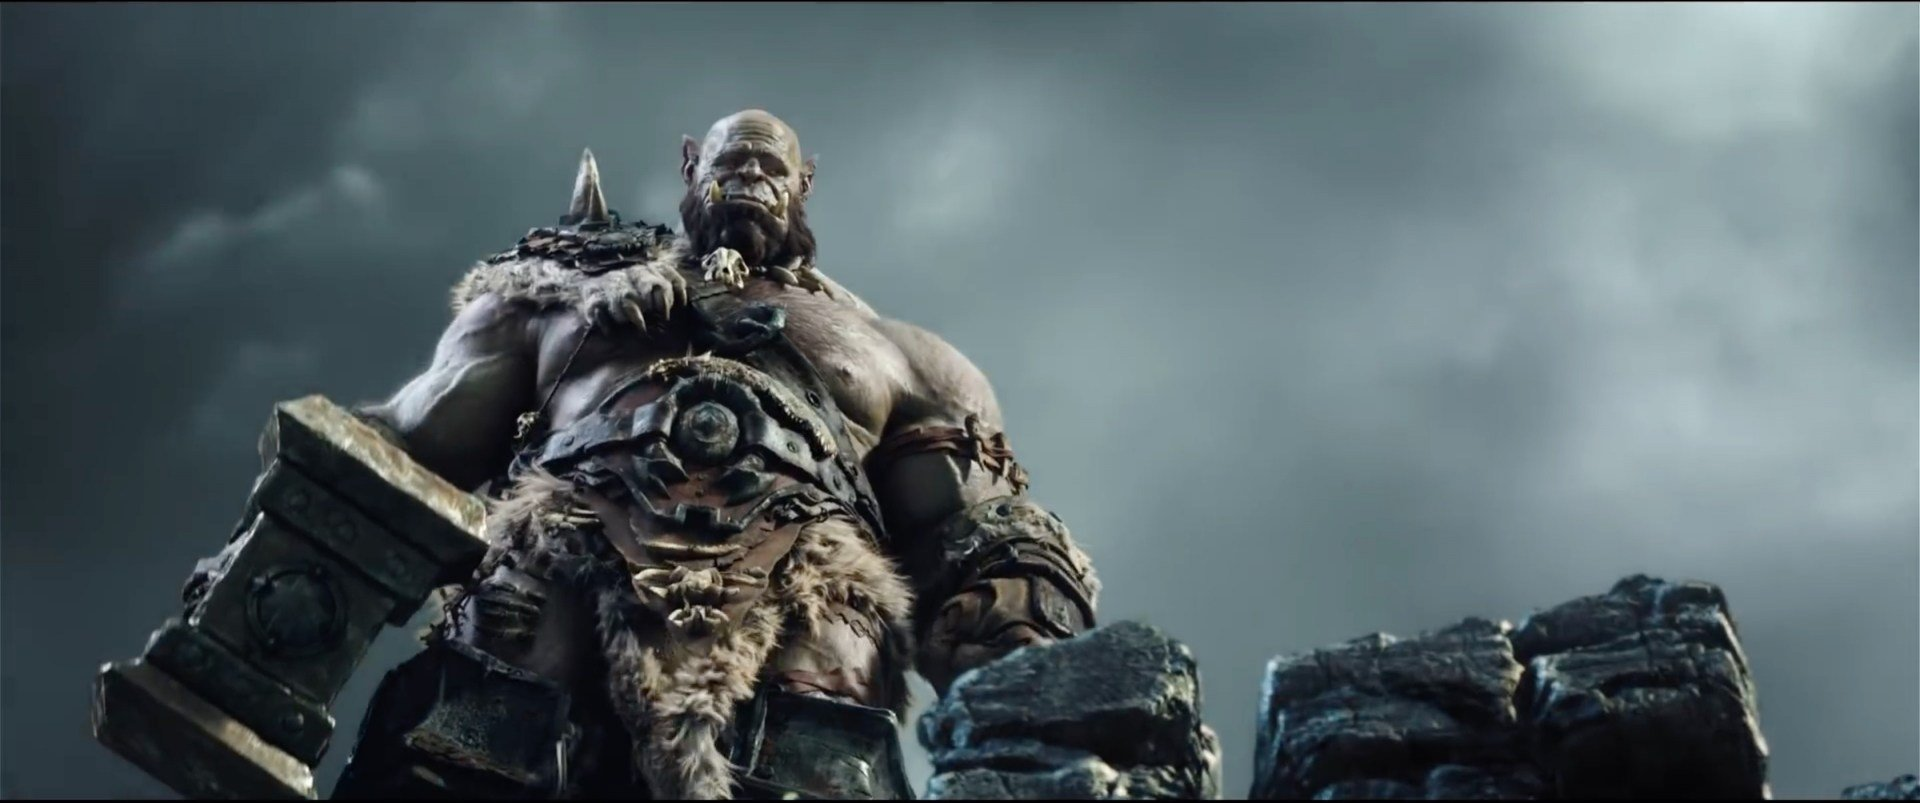 20766-warcraft-movie-new-tv-spot-and-mov